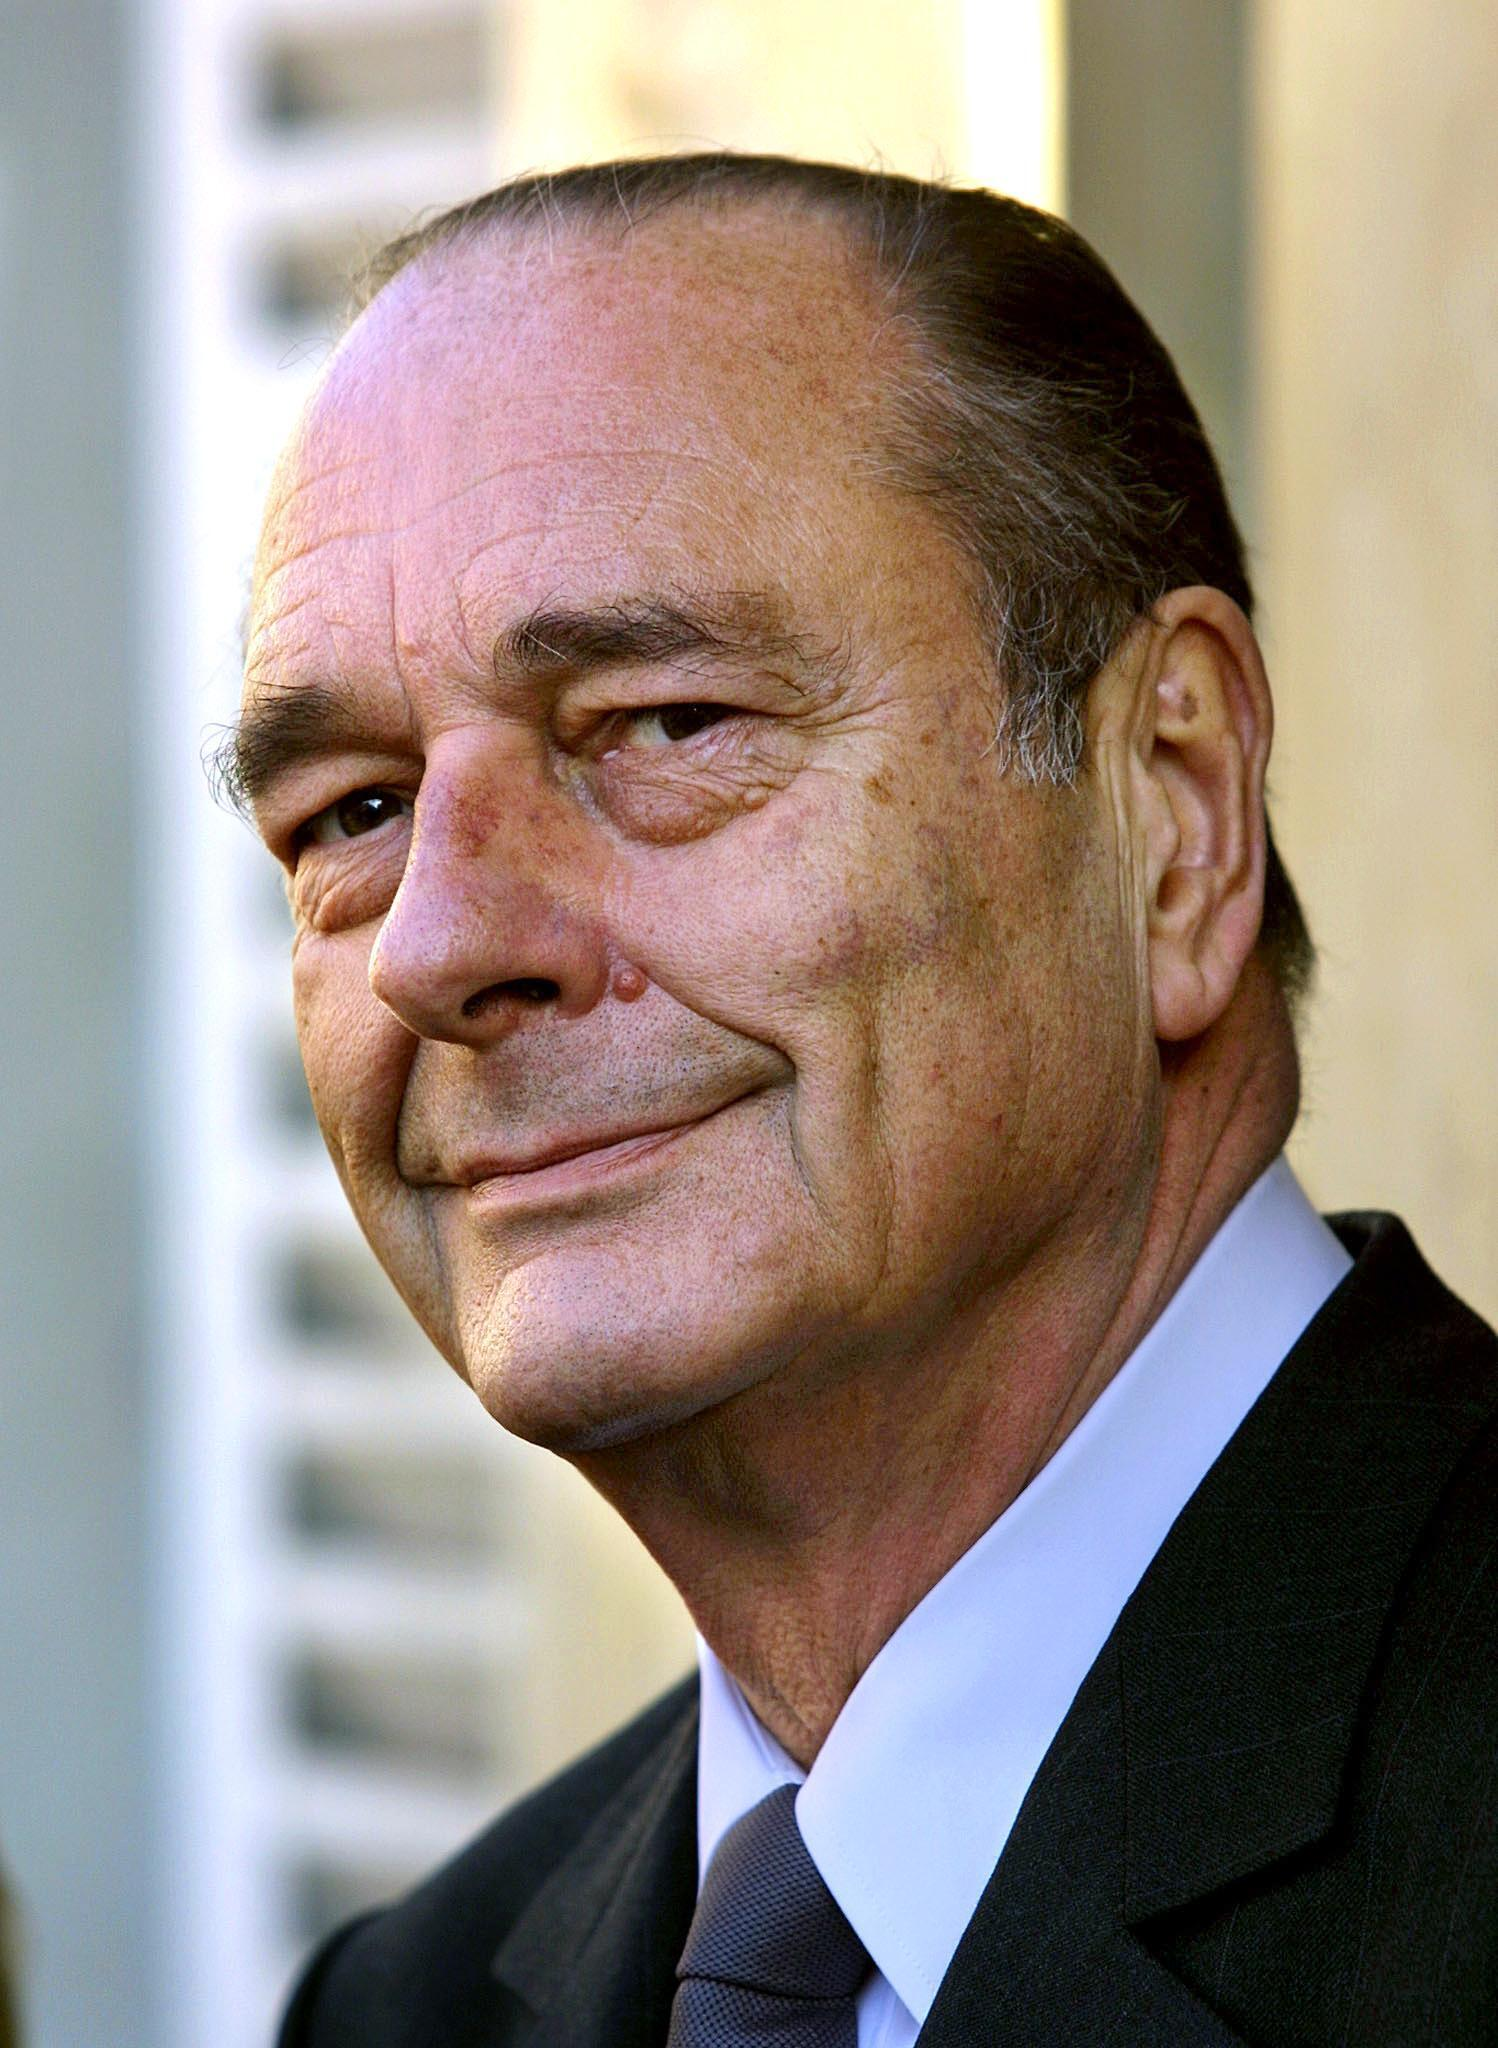 In this file photo taken on January 31, 2002 French President Jacques Chirac smiles during a visit in Provins. Former French President Jacques Chirac has died at the age of 86, it was announced on September 26, 2019.